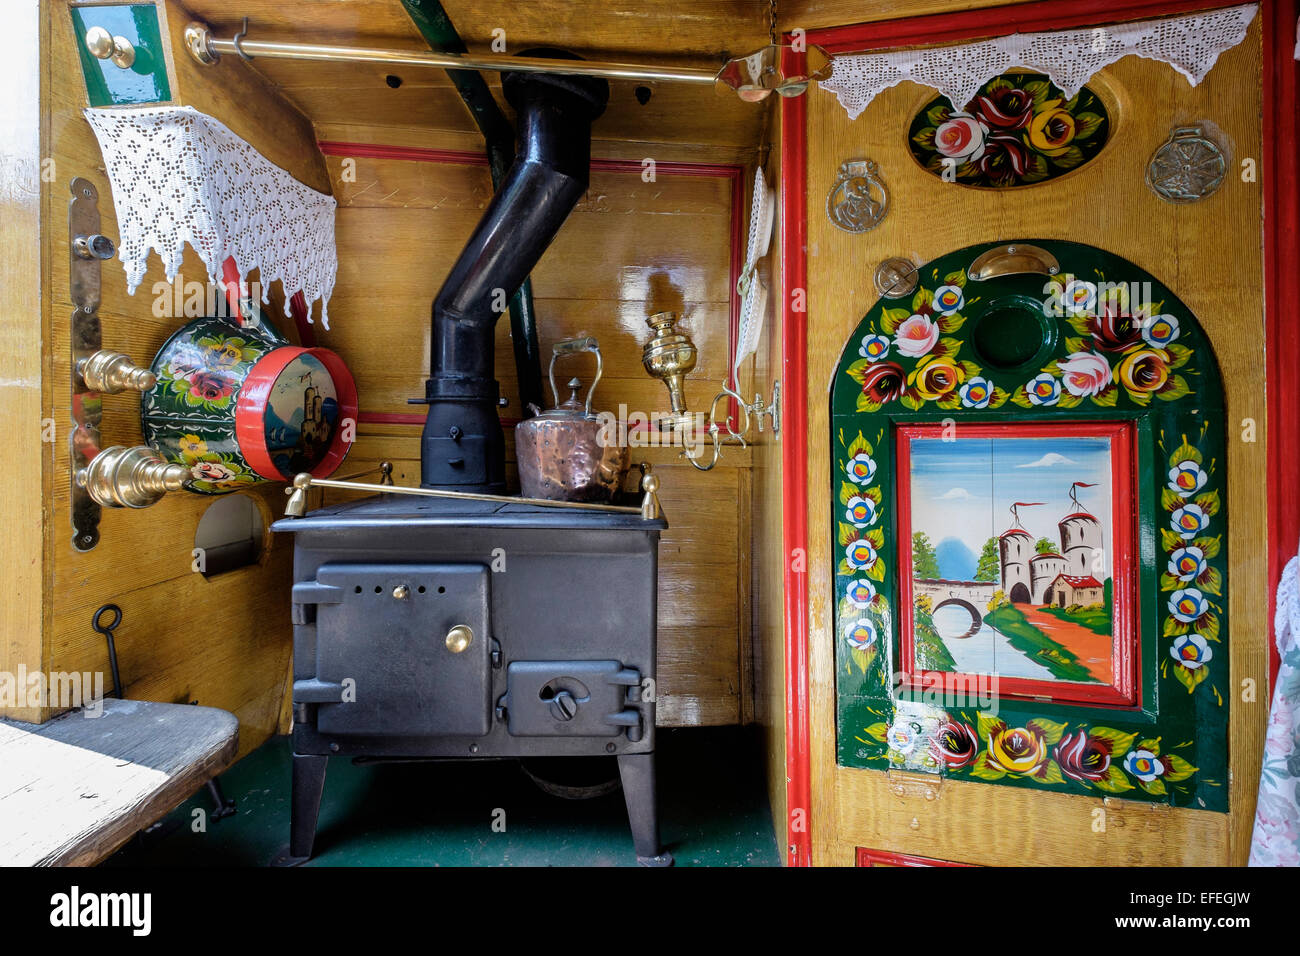 Interior of traditional canal narrowboat galley at National Waterways Museum. Ellesmere Port, Cheshire, England, - Stock Image